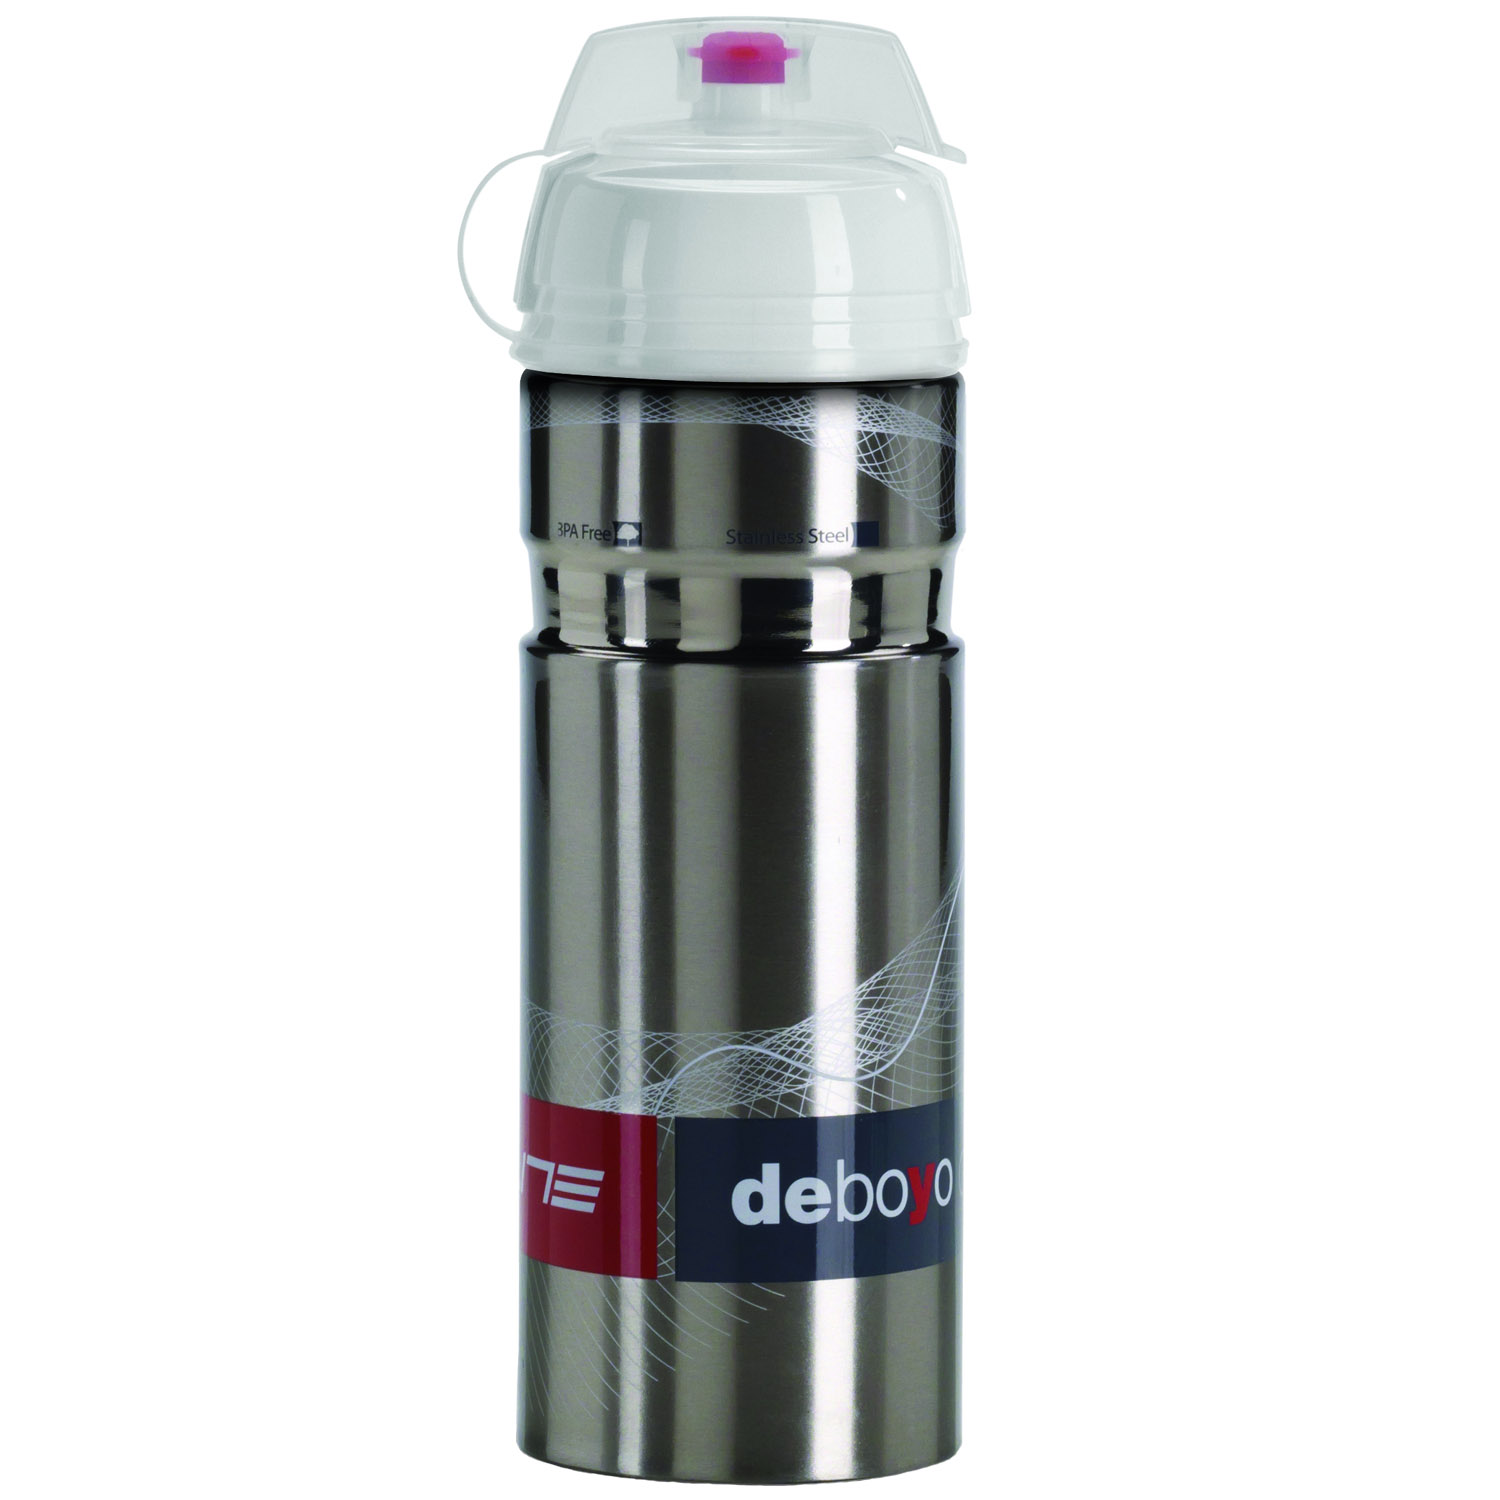 elite deboyo thermo trinkflasche 500 ml online shop. Black Bedroom Furniture Sets. Home Design Ideas